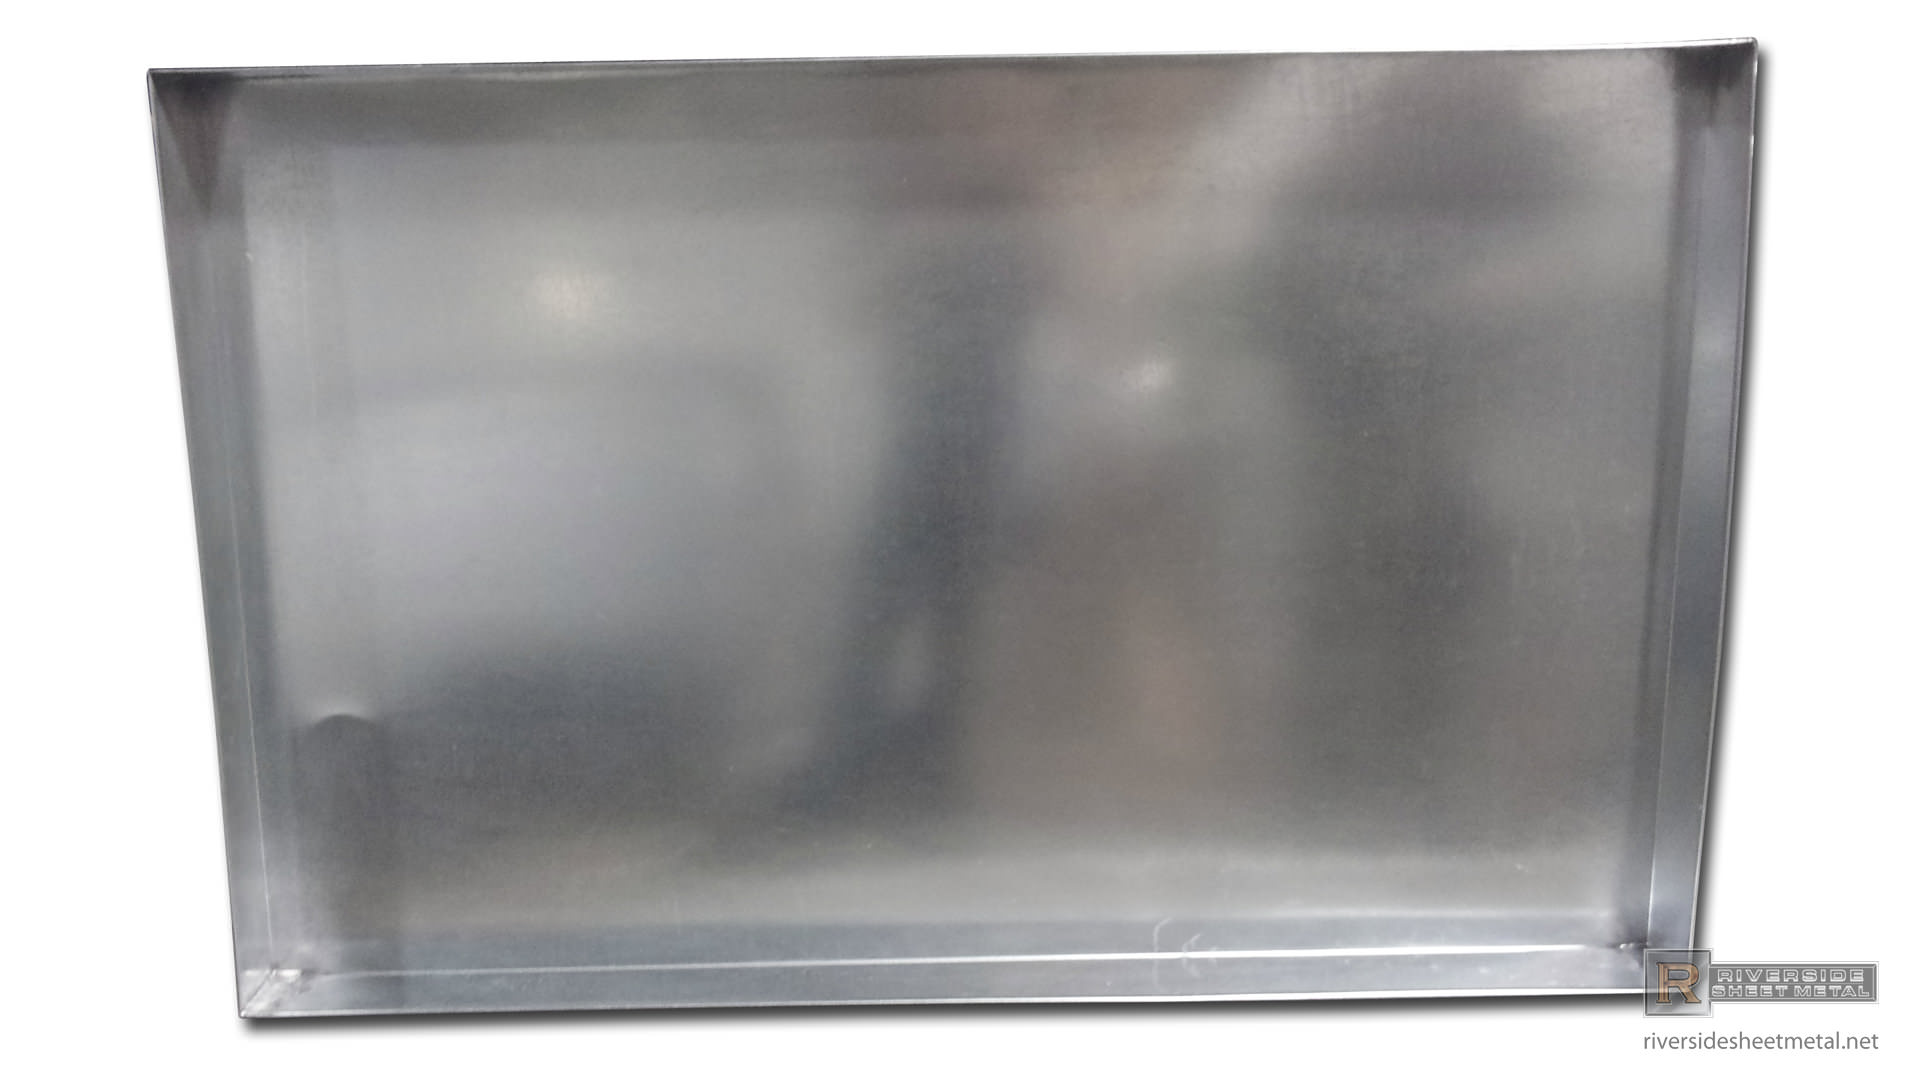 drip pan for washing machine in galvanized steel - Drip Pans